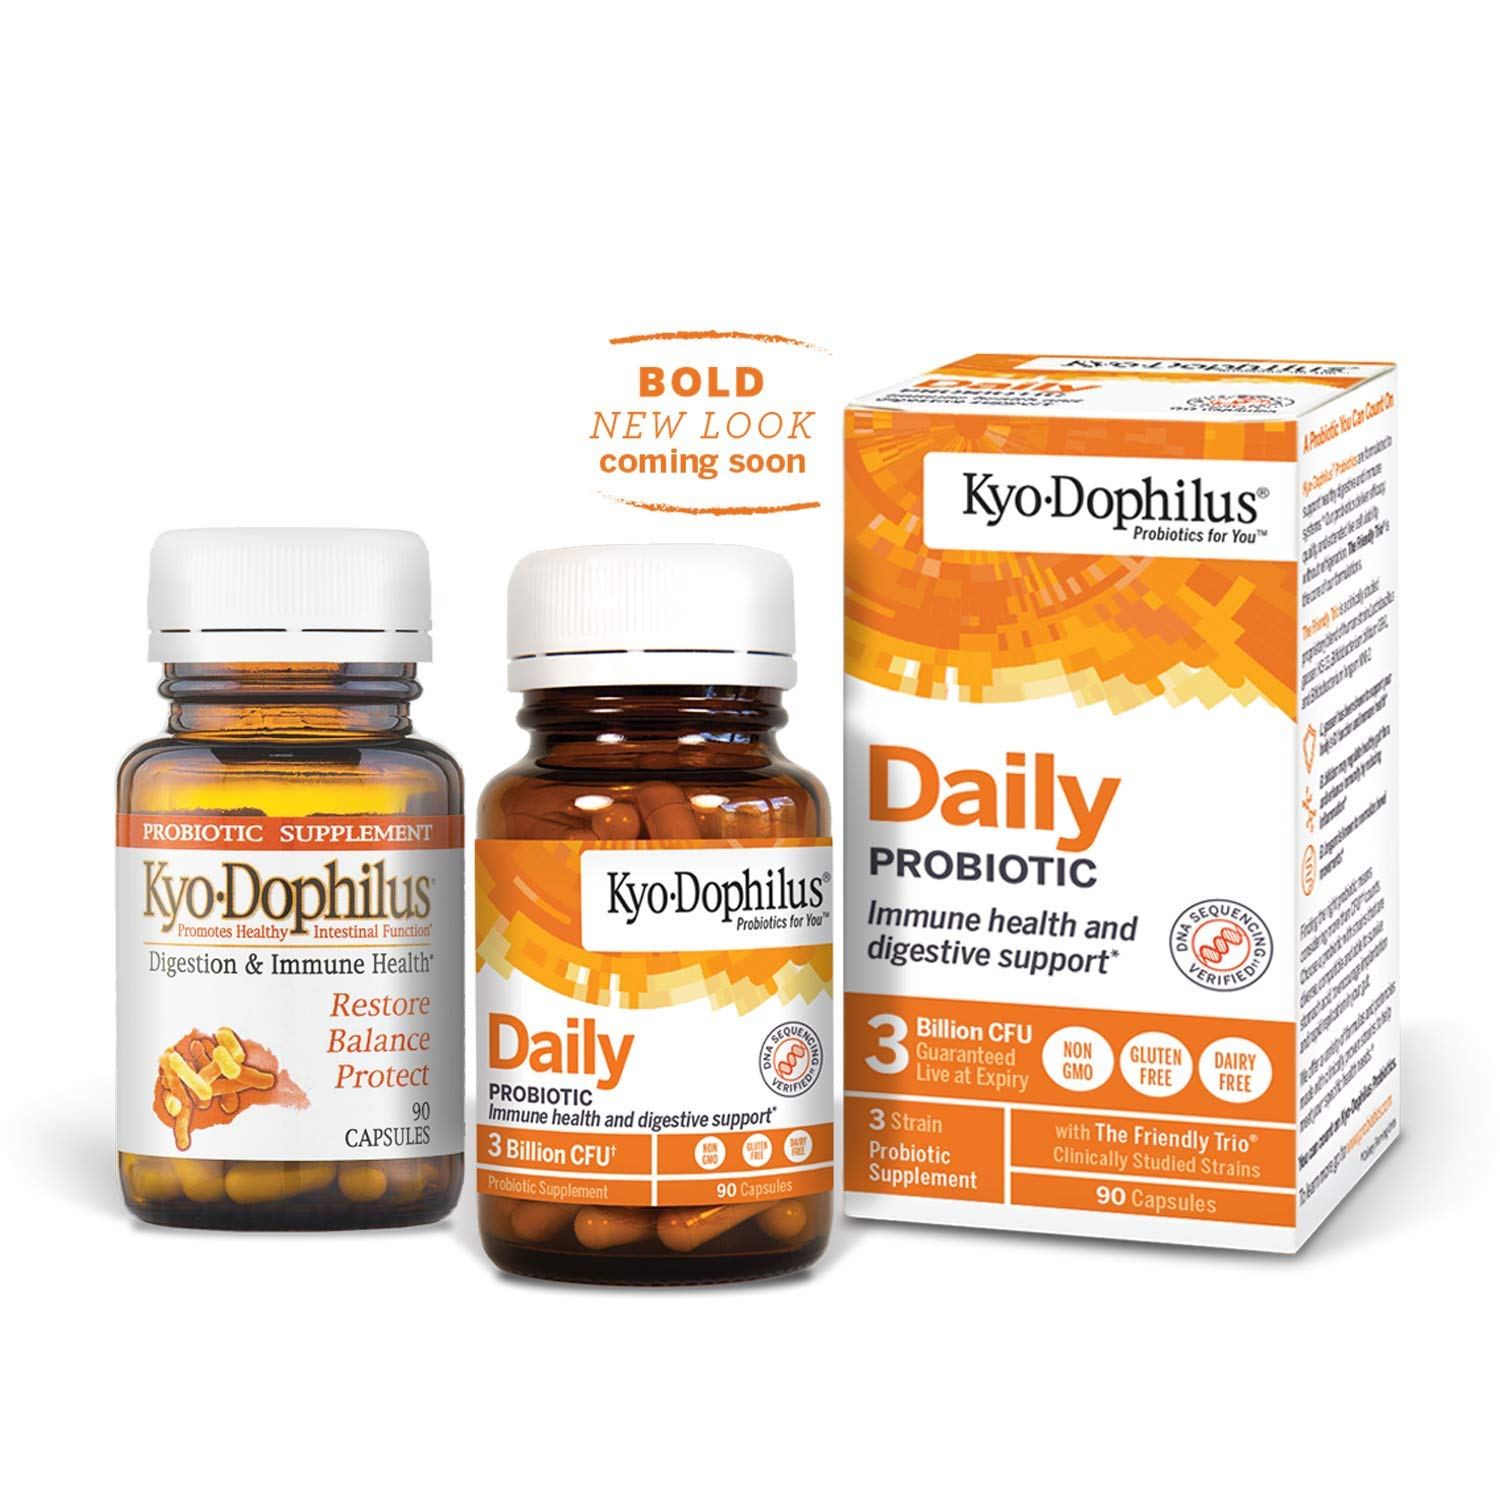 Kyo-Dophilus Digestion & Immune Health Probiotic Supplement, 90 Capsules  Soy & Gluten Free,